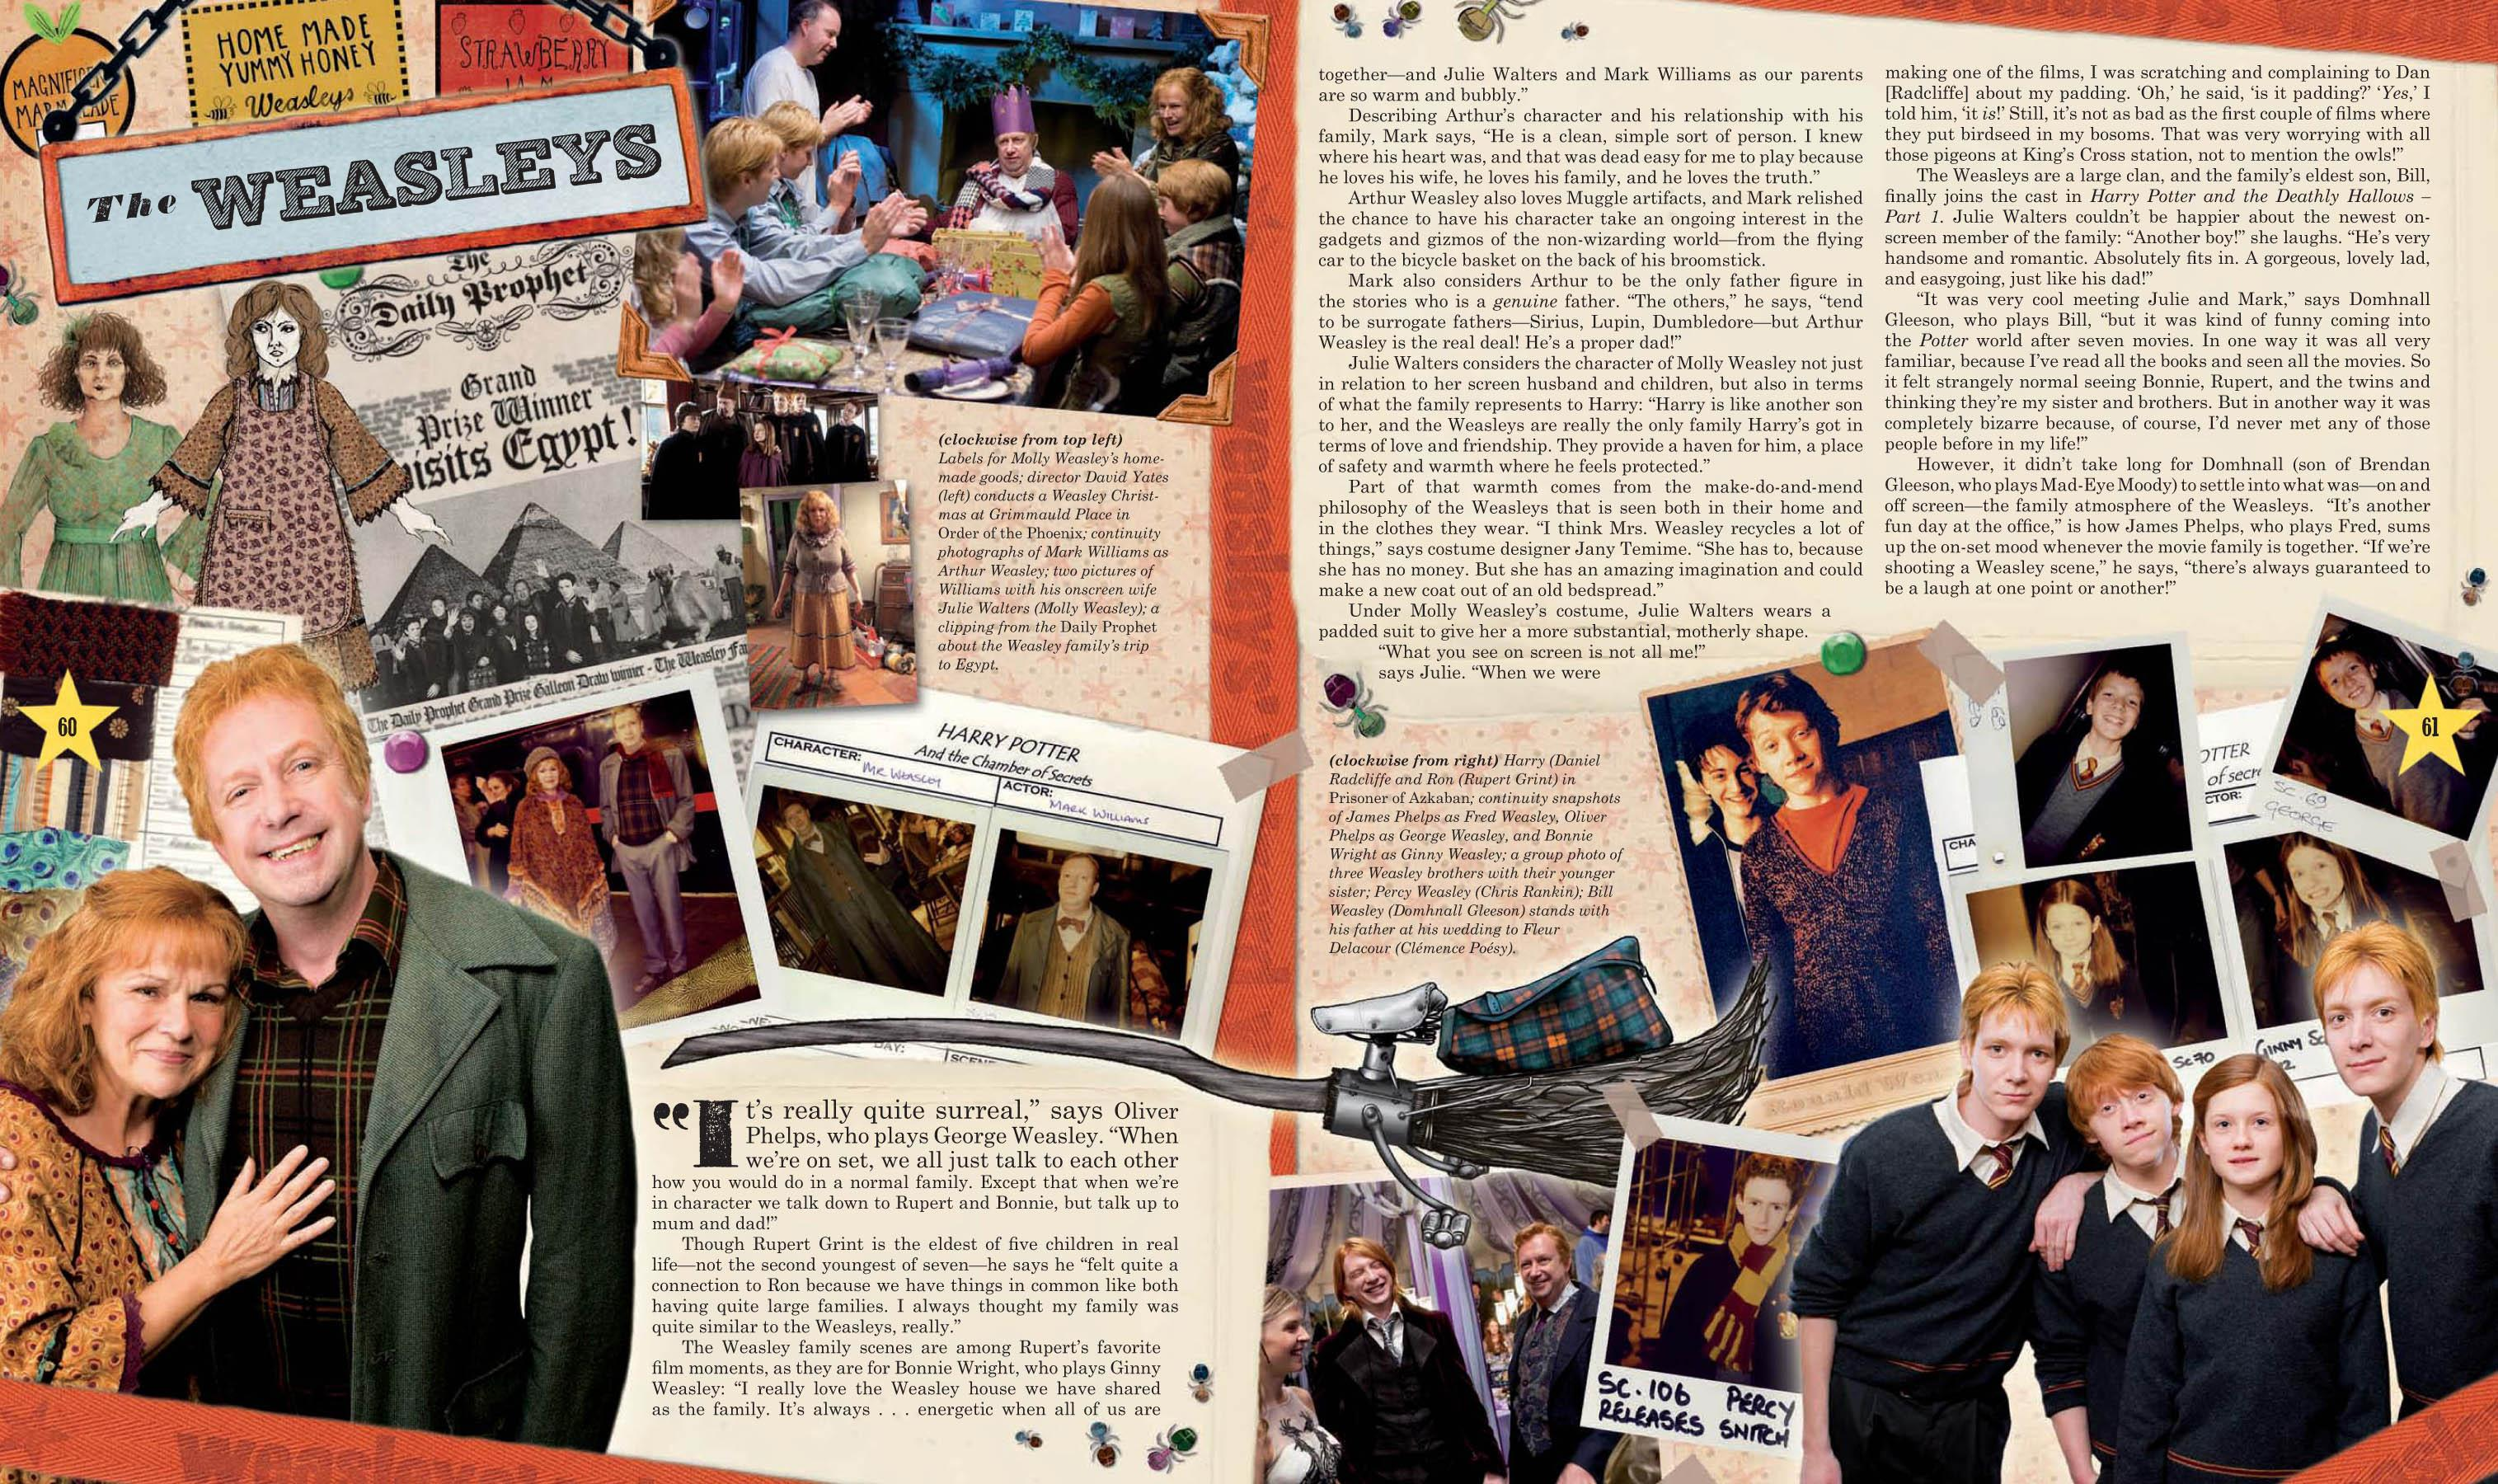 term paper on harry potter How to write a research paper on symbolism in harry potter this page is designed to show you how to write a research project on the topic you see to the left use our sample or order a custom written research paper from paper masters custom research papers - custom written research papers on any topic you need starting at $2395 per page.